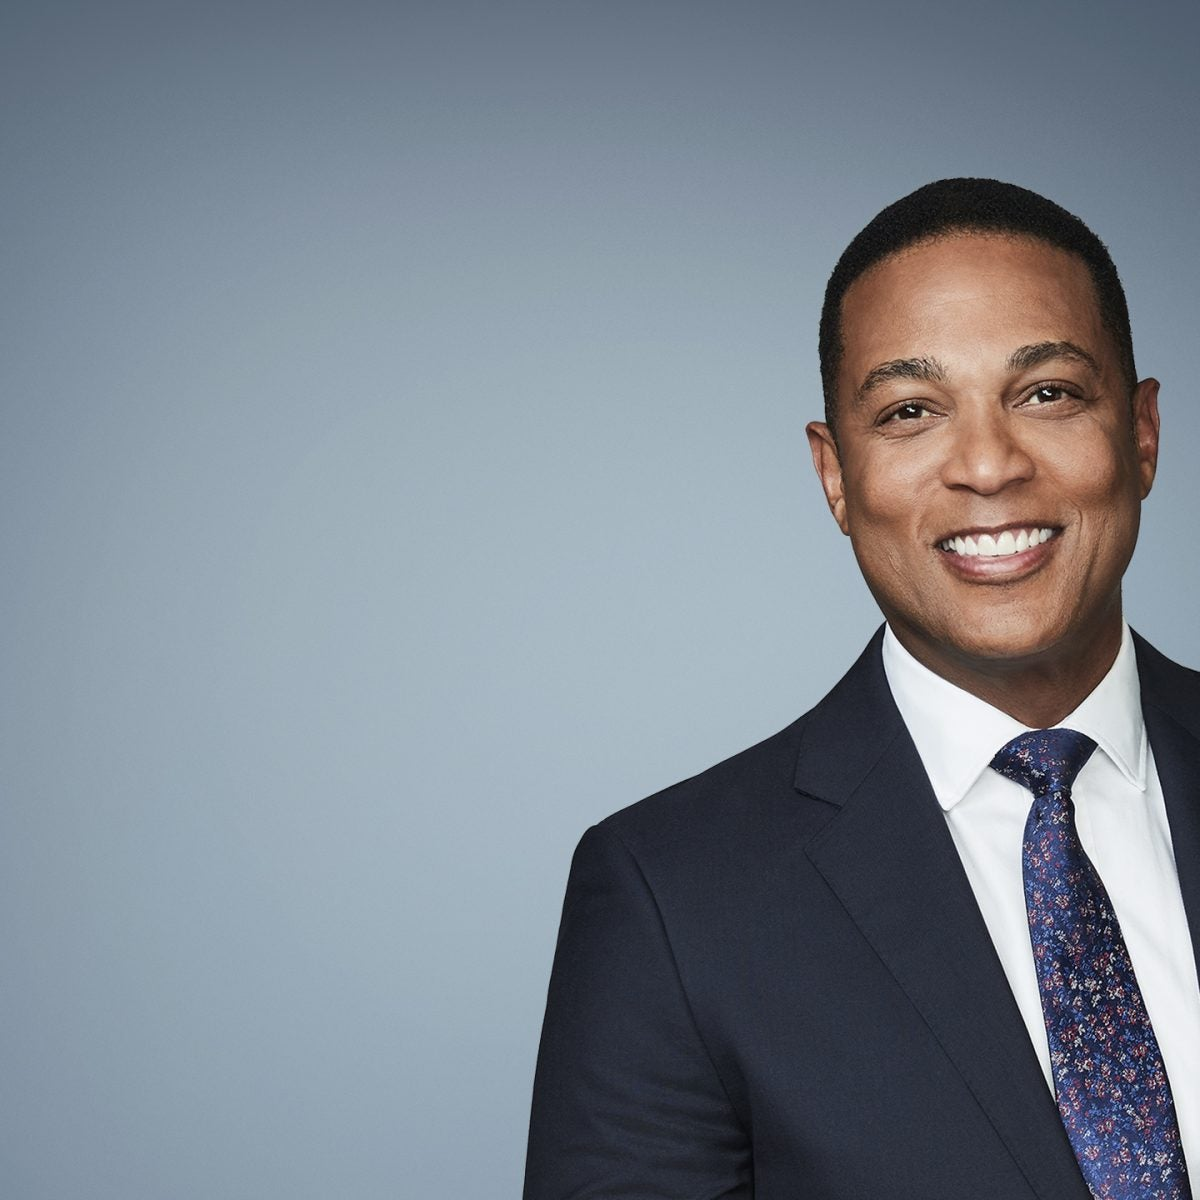 Don Lemon On His New Book 'This Is The Fire' And Why He Doesn't See Our Country Going Backward Again